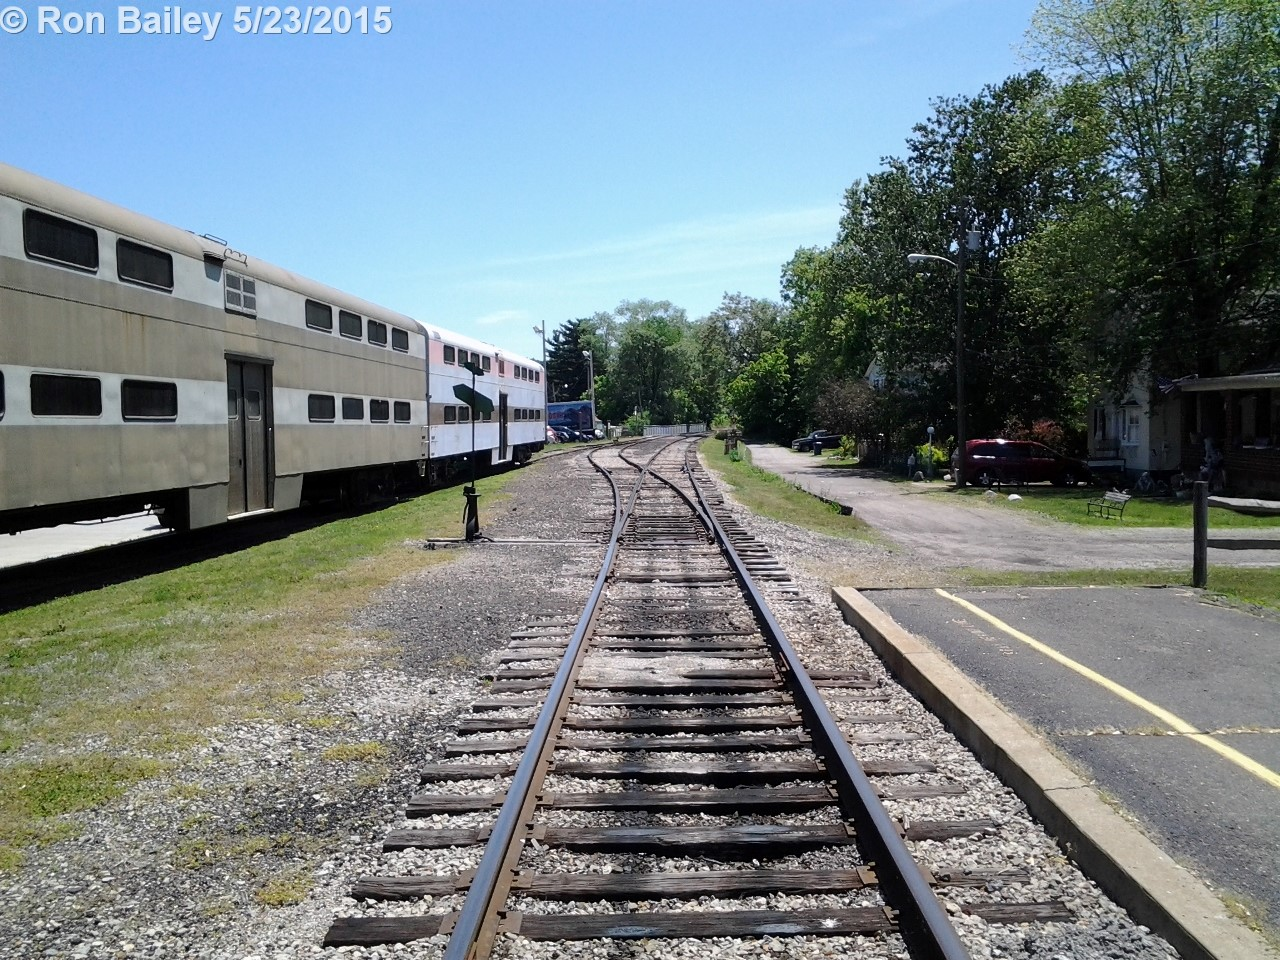 Hocking Valley Scenic Railway  5-23-2015 1-16-53 PM